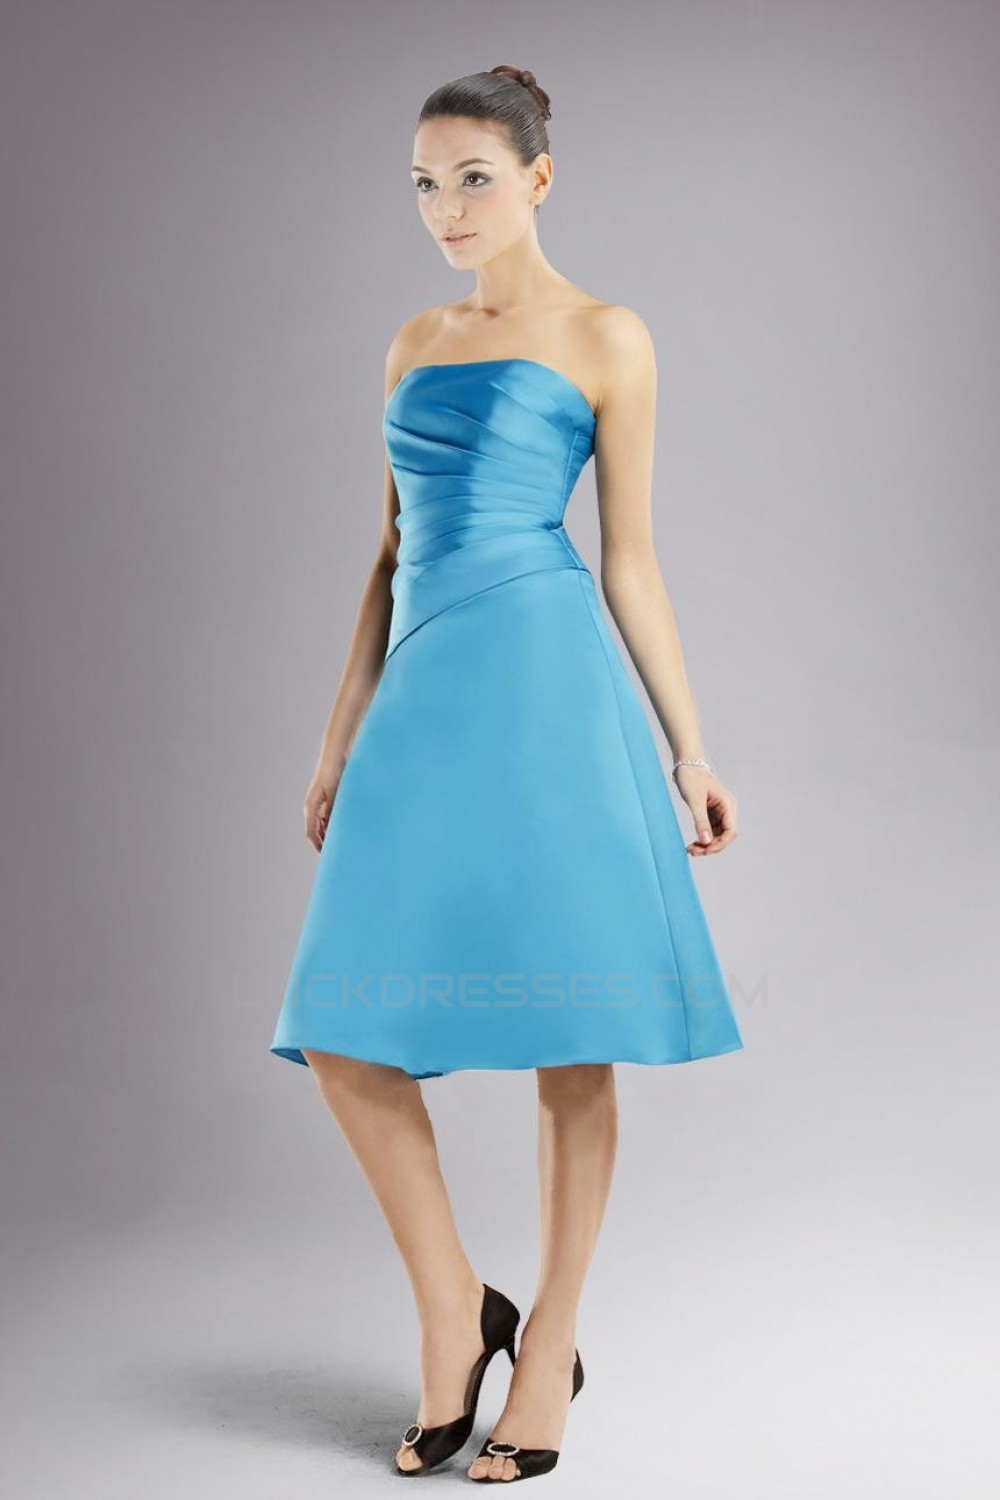 854a0cc3bce7b A-Line Strapless Blue Knee-Length Bridesmaid Dresses/Wedding ...